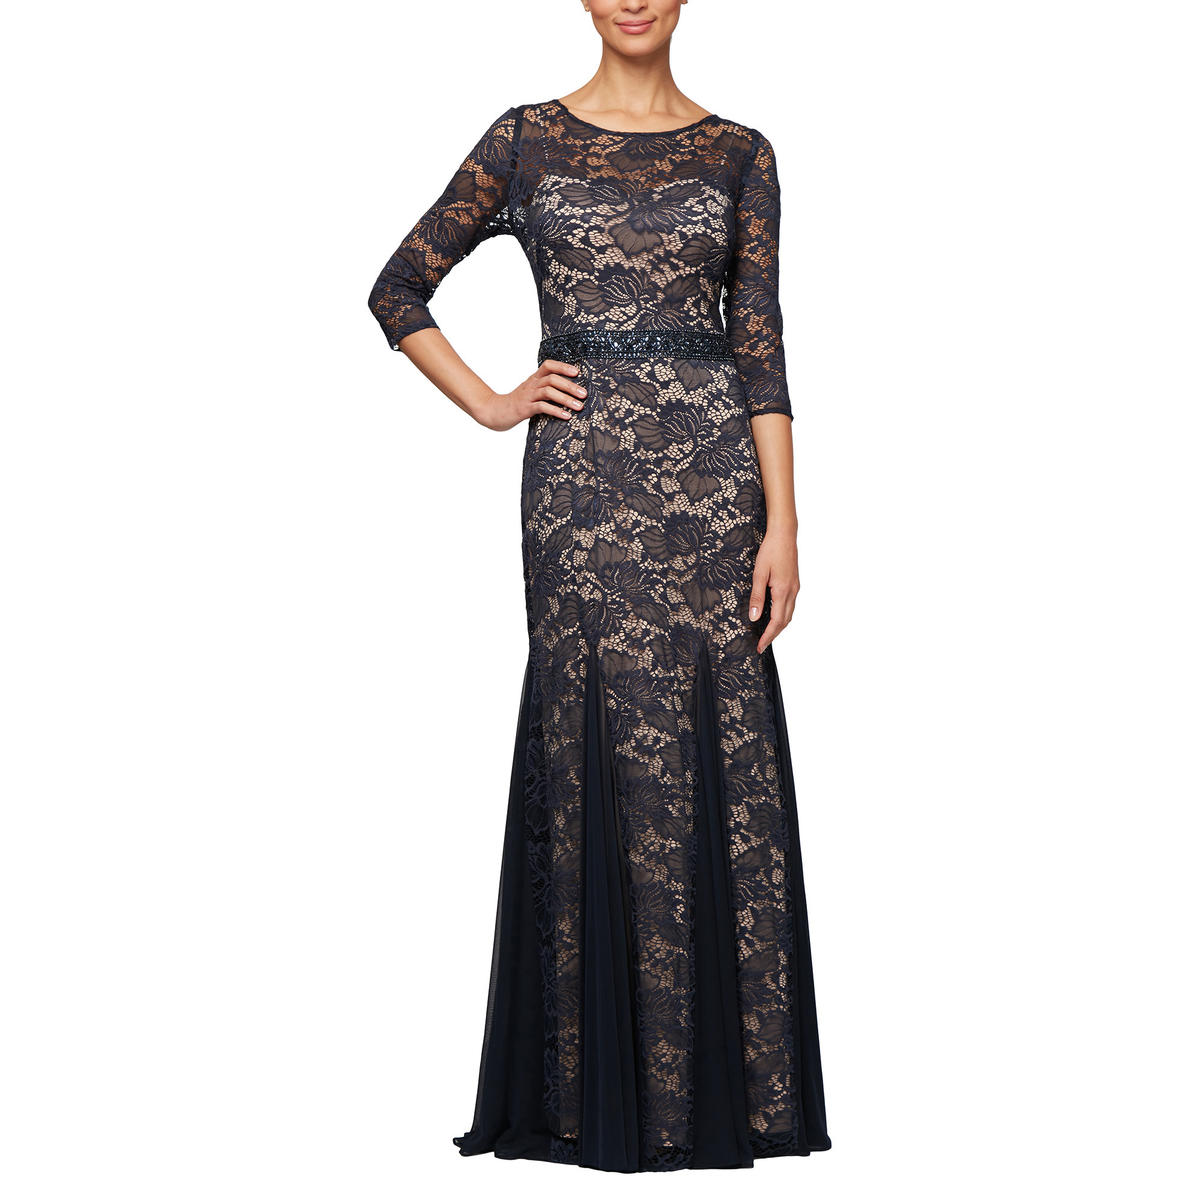 ALEX APPAREL GROUP INC - Long Sleeve Lace Gown-Bead Waist